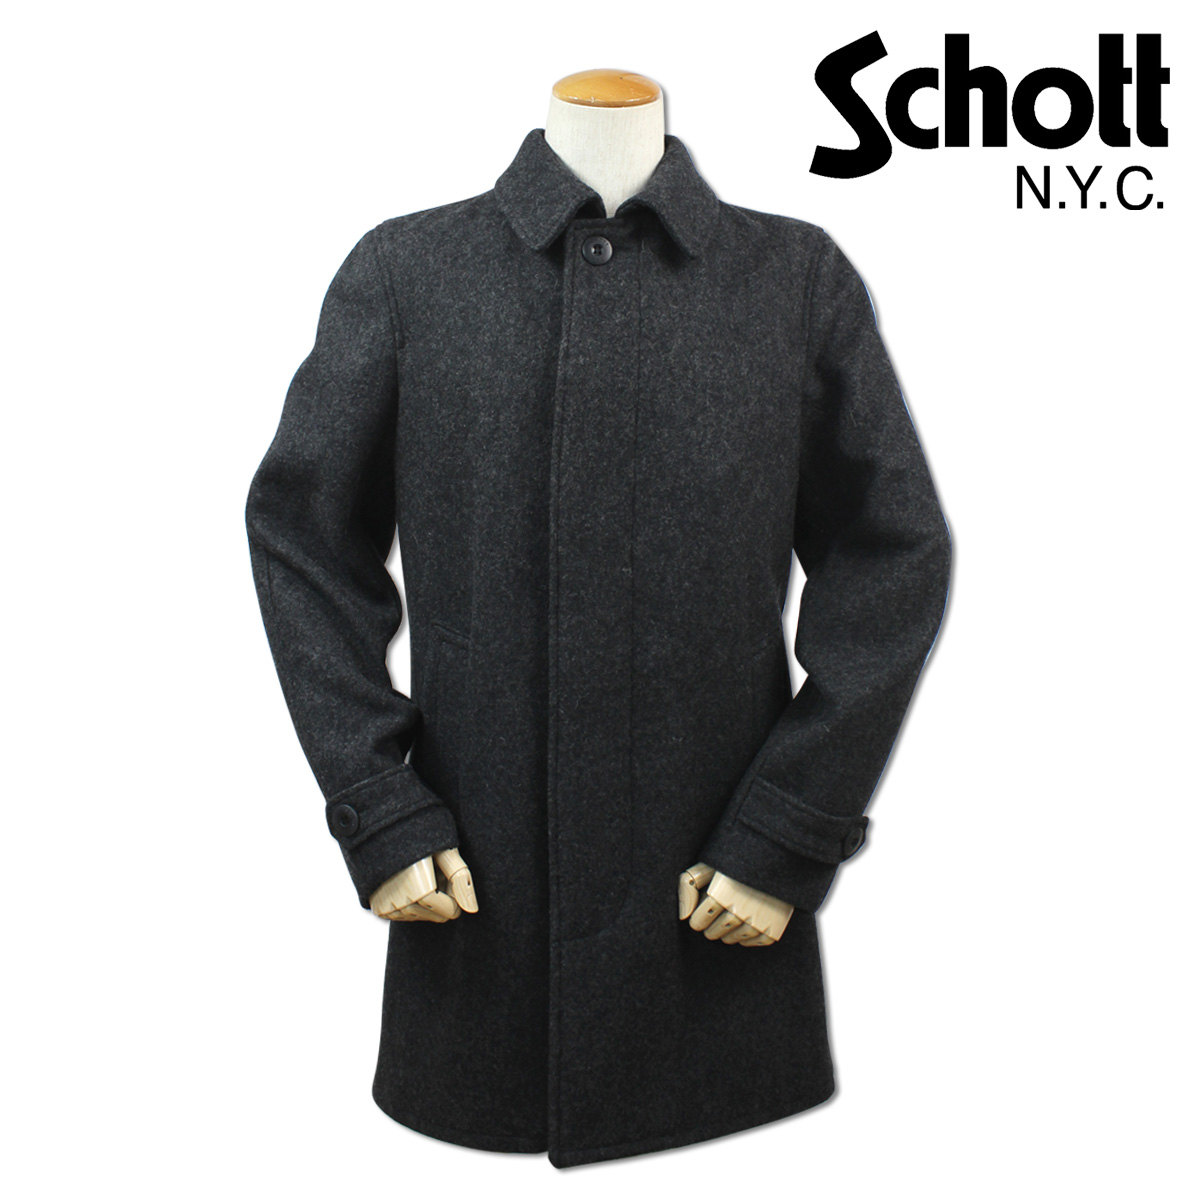 ALLSPORTS | Rakuten Global Market: Shot Schott coat wool coat ...